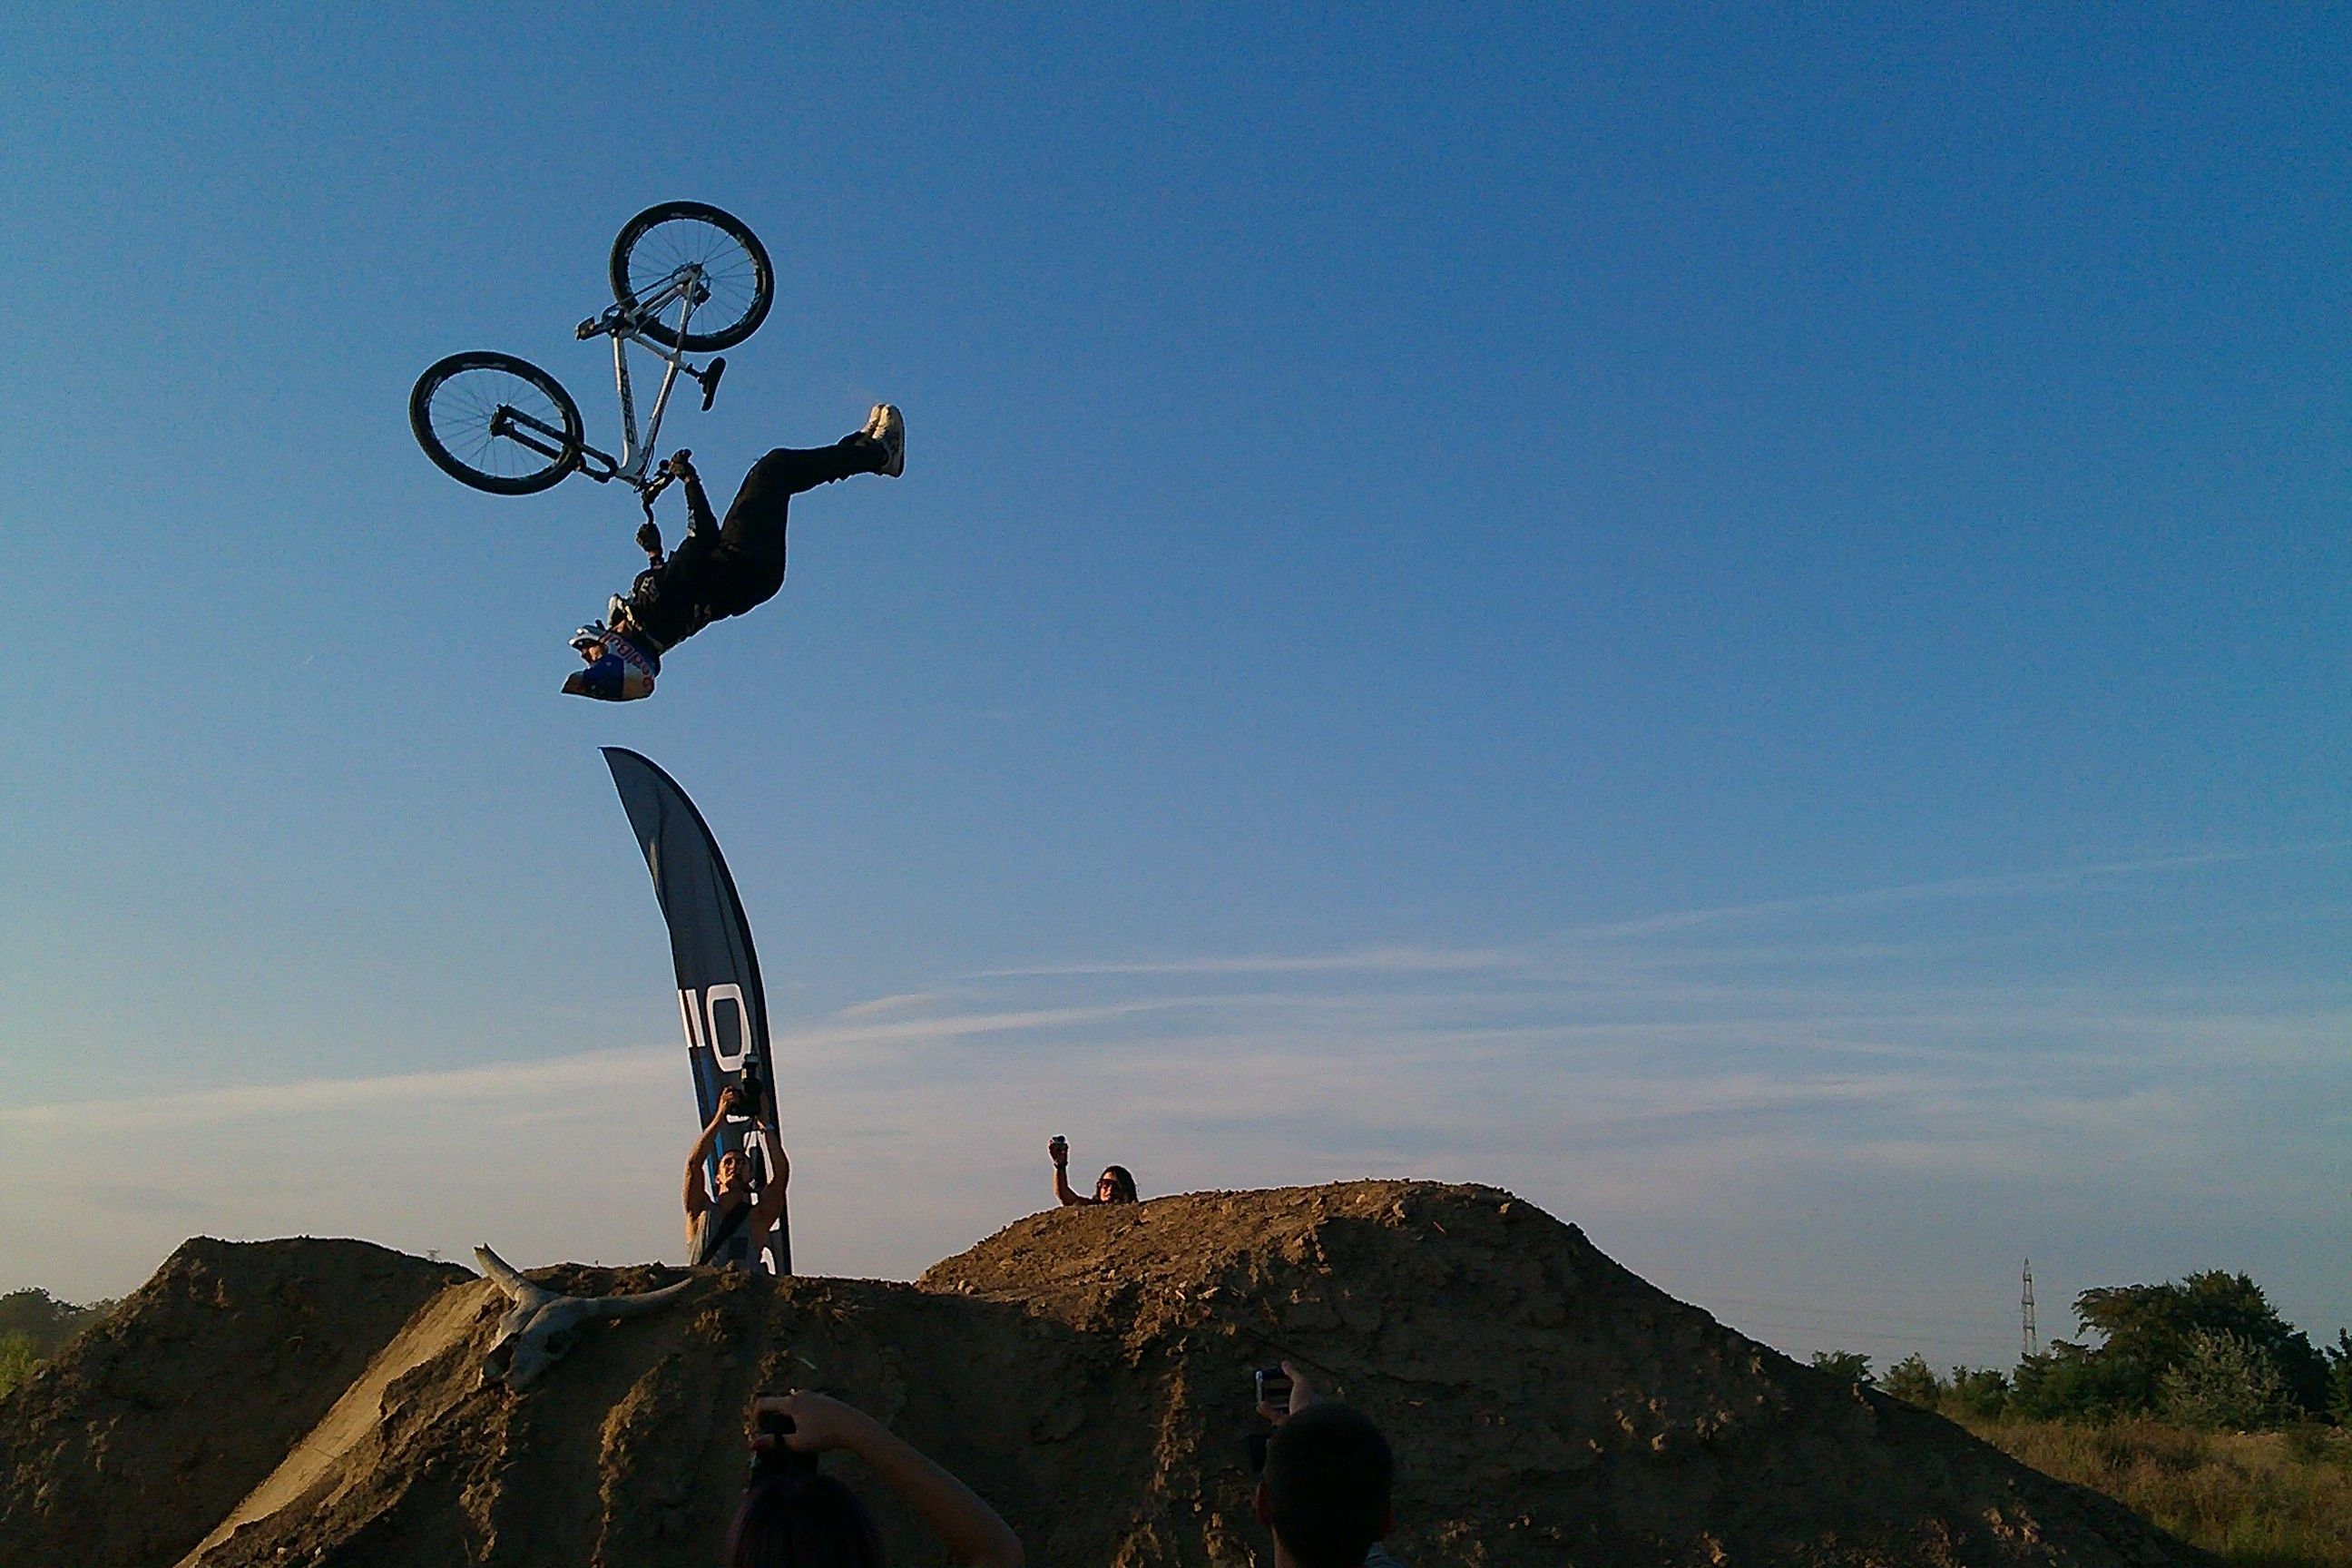 One Of The Best Mtb Riders Mislav Mironovic Fliping On Dirt Jump